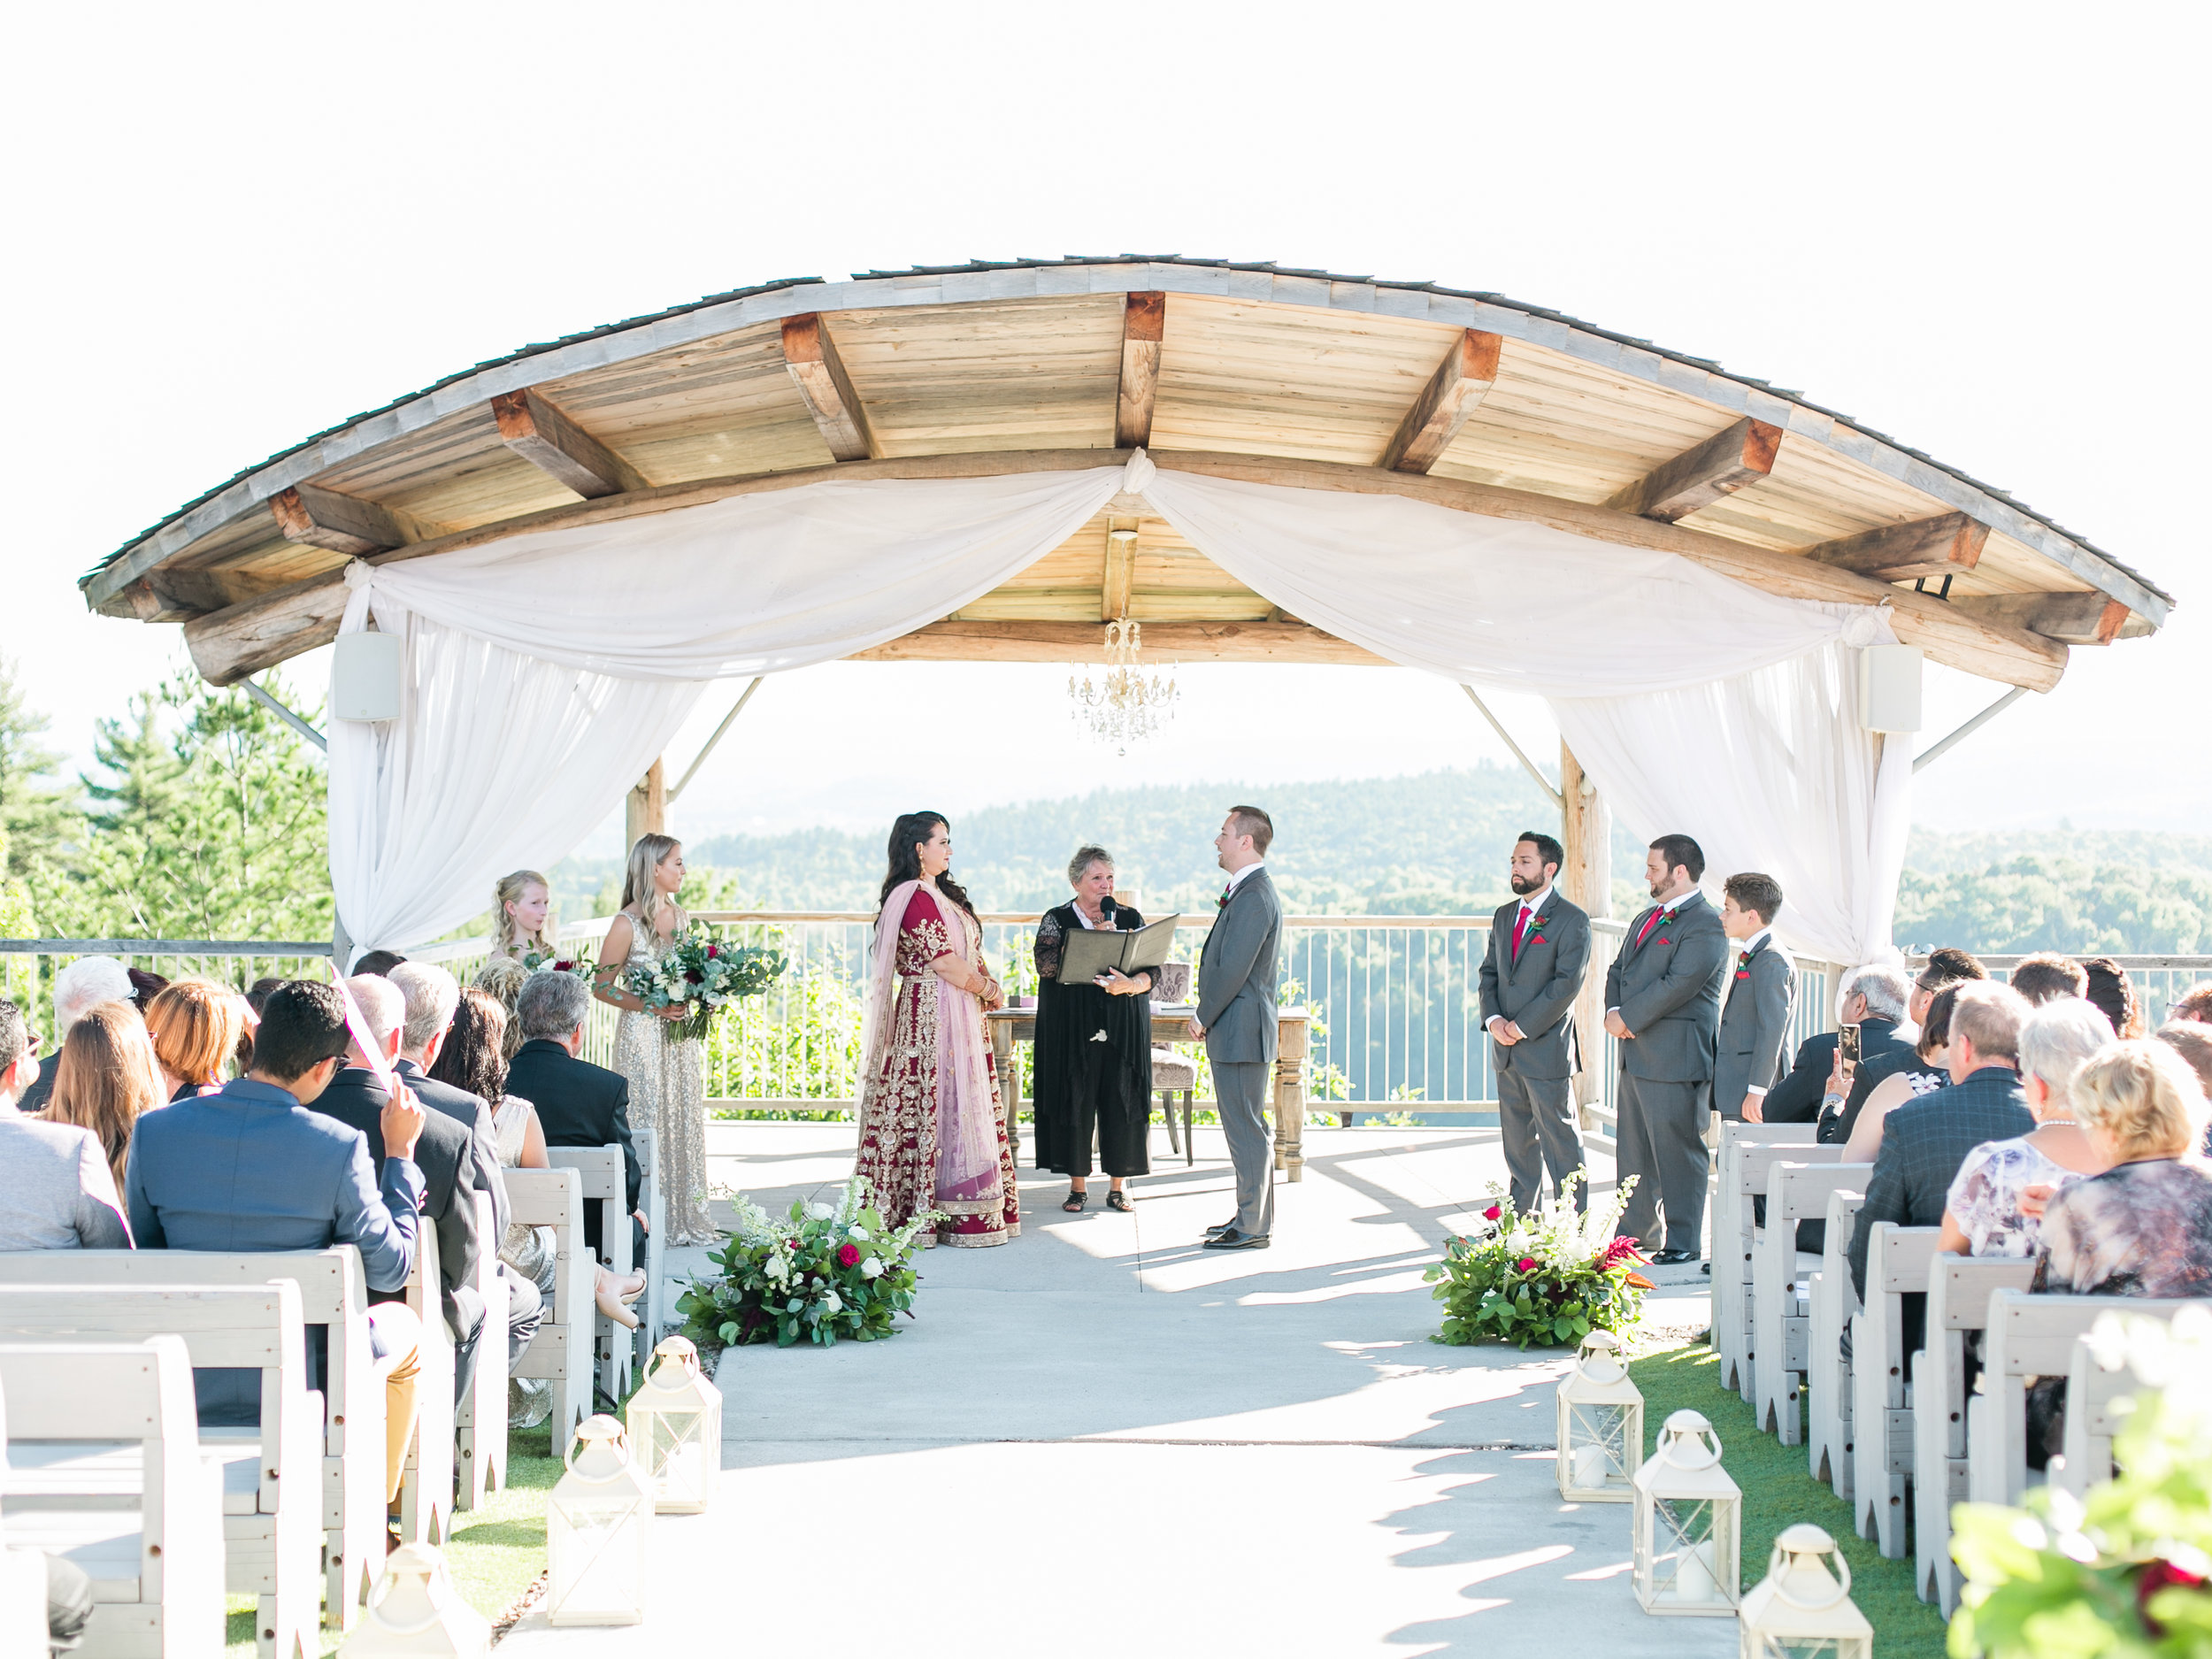 LeBelvedere_MountainTopWedding_StephanieMasonPhotography-139.jpg